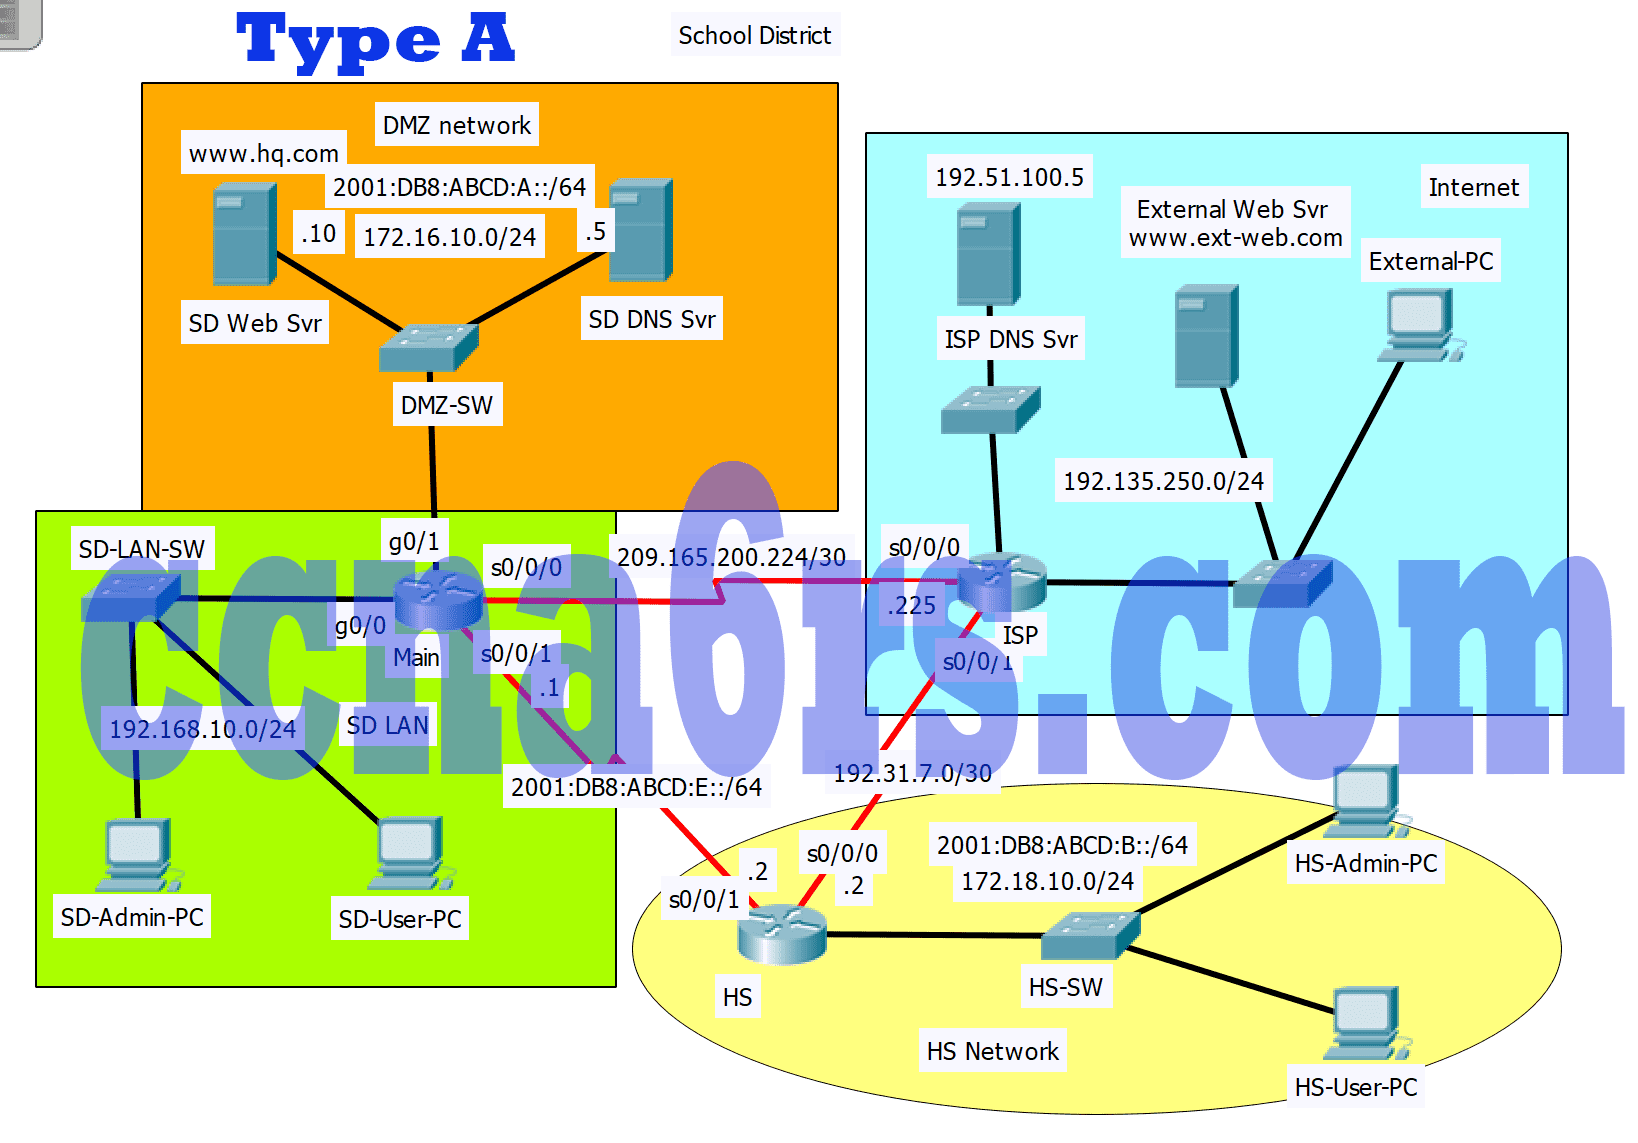 Chapter 5 Packet Tracer Skills Assessment - PT Type A